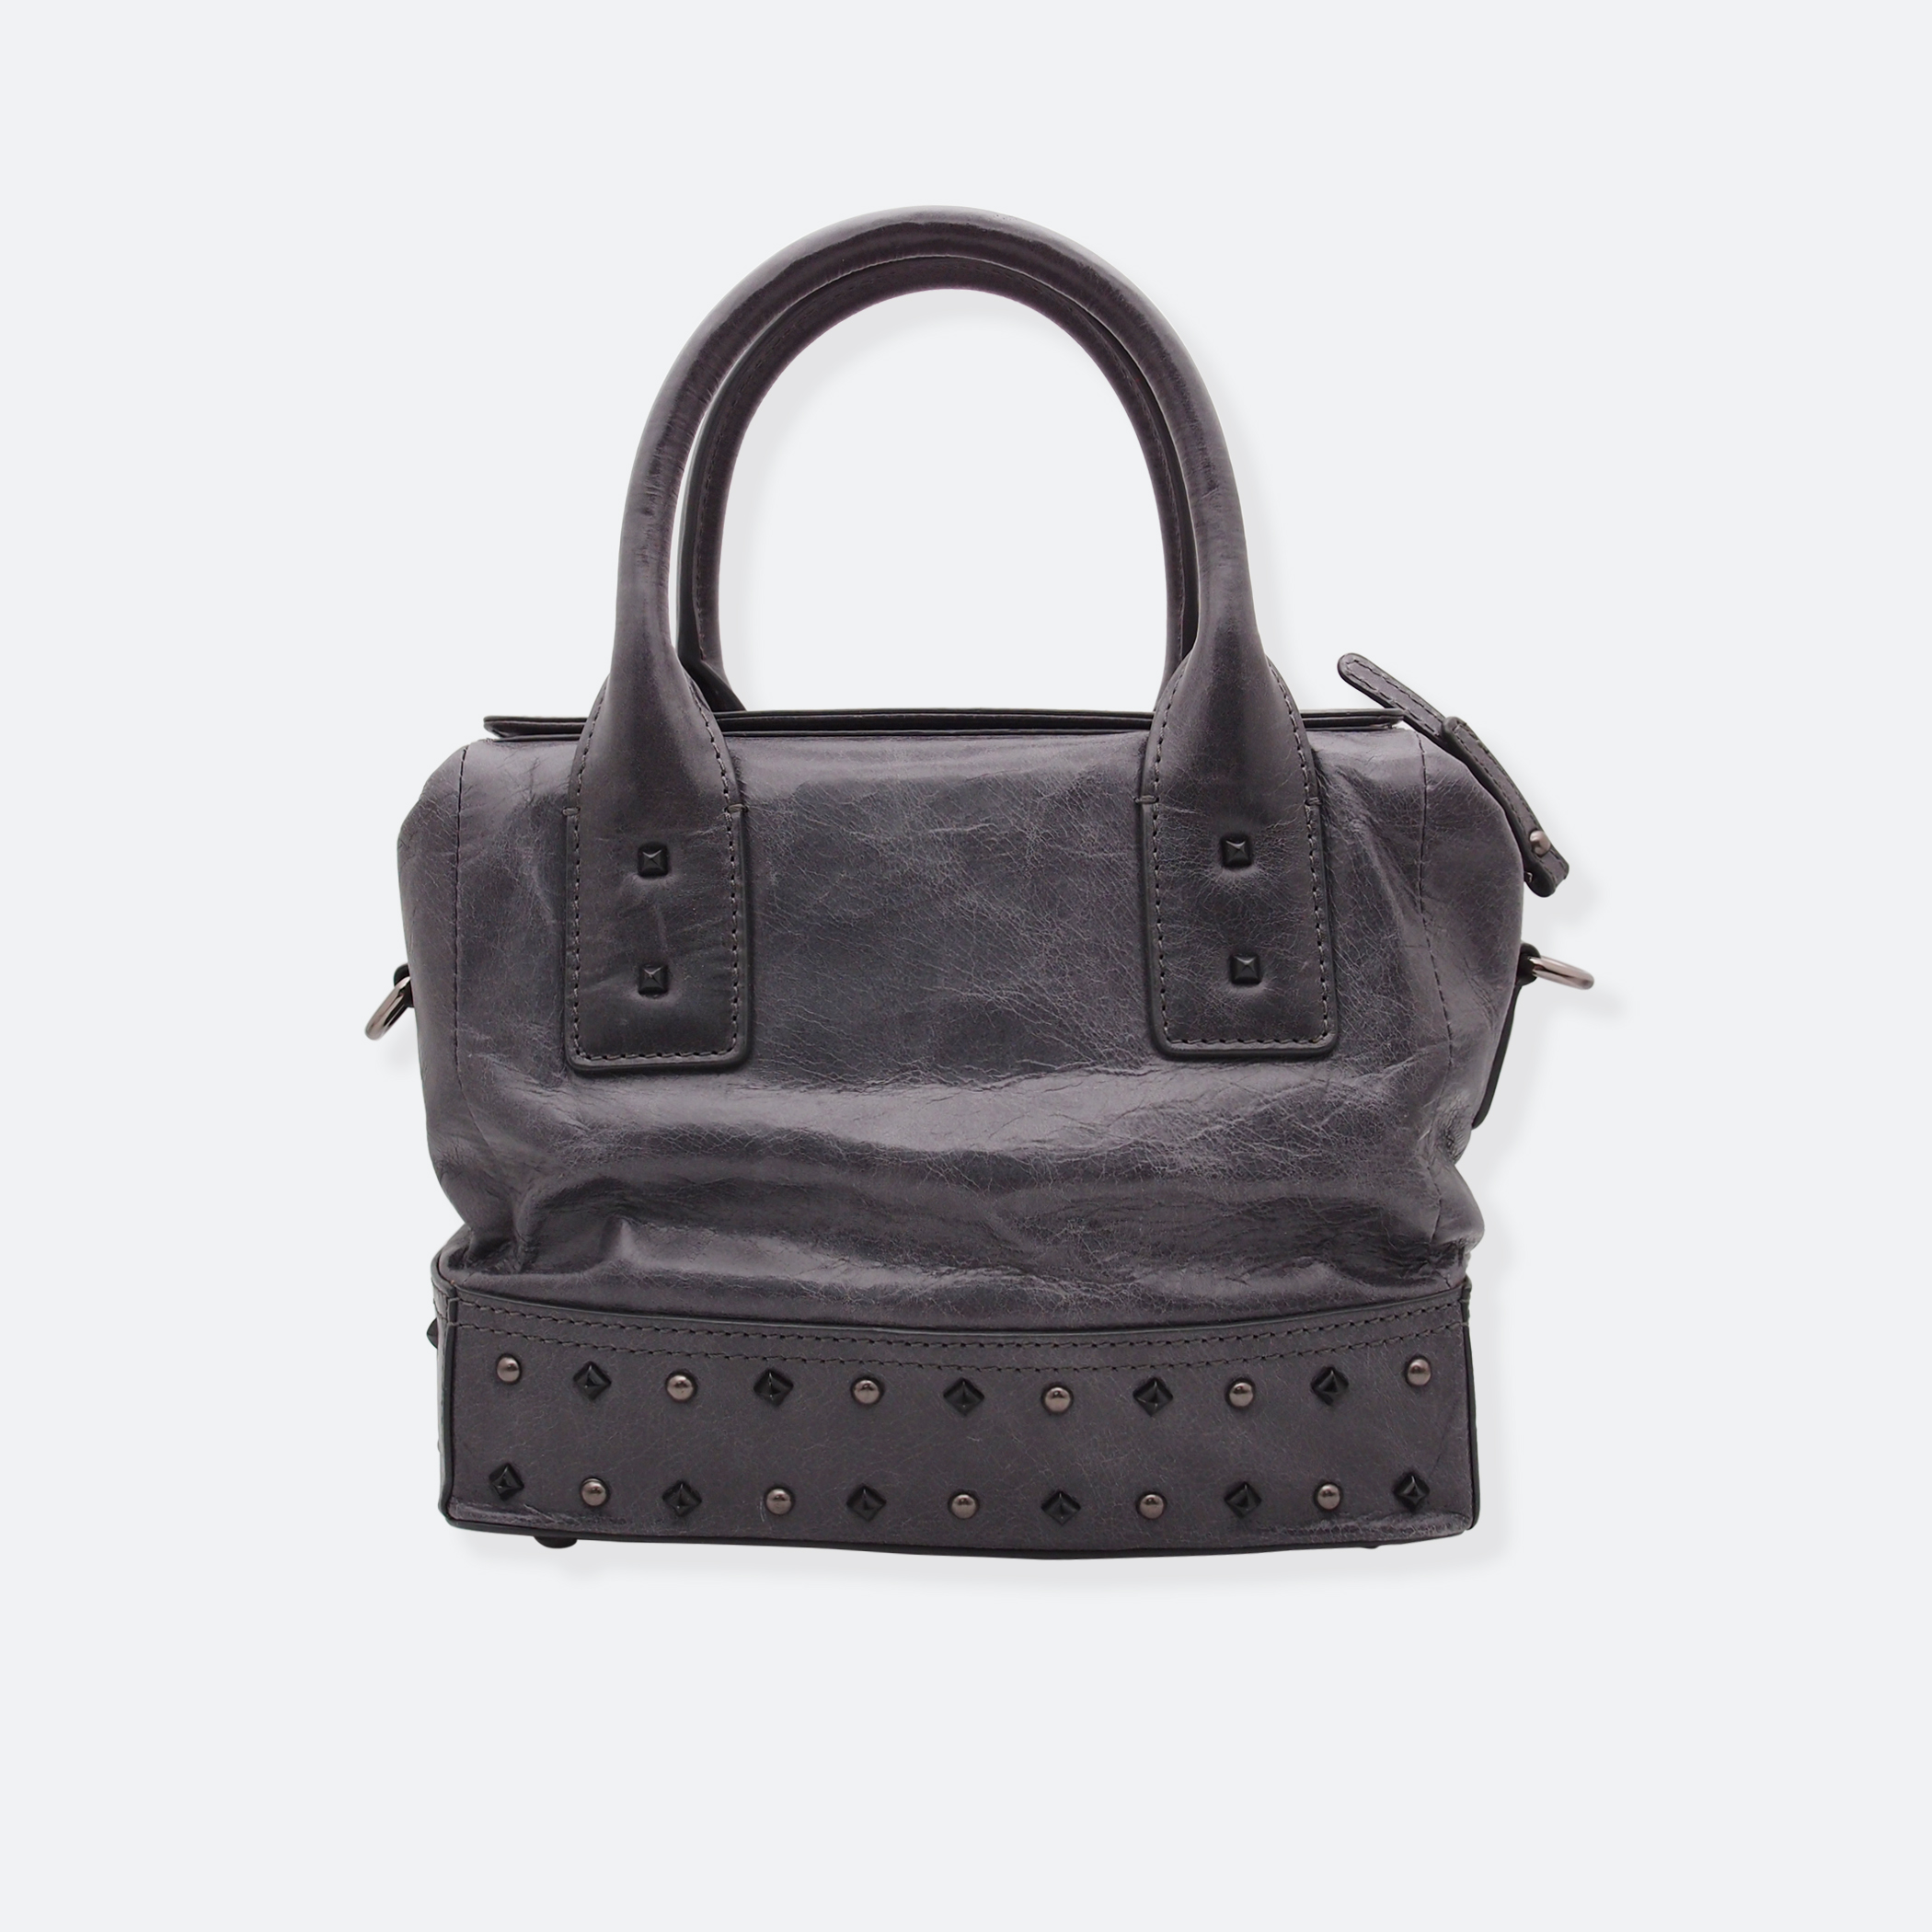 OhMart People By People – Leather Ding Satchel ( Black / Silver Ding ) 4